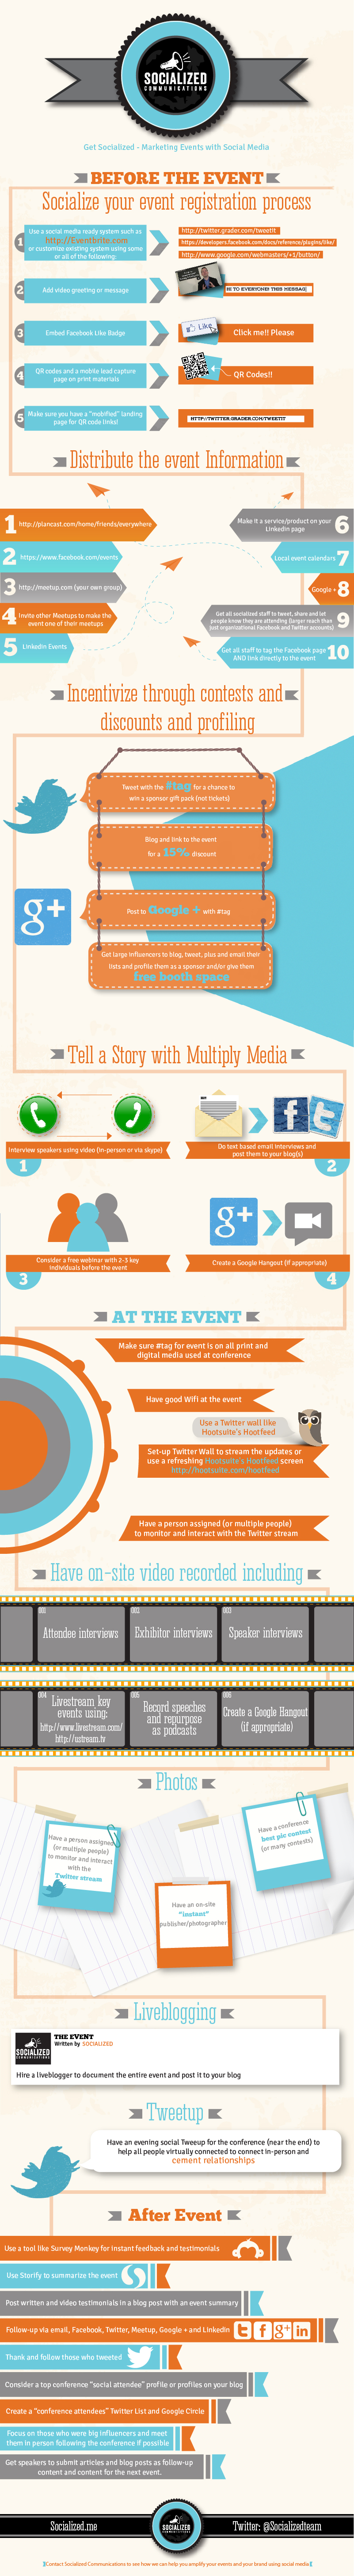 Event Marketing and Preparation